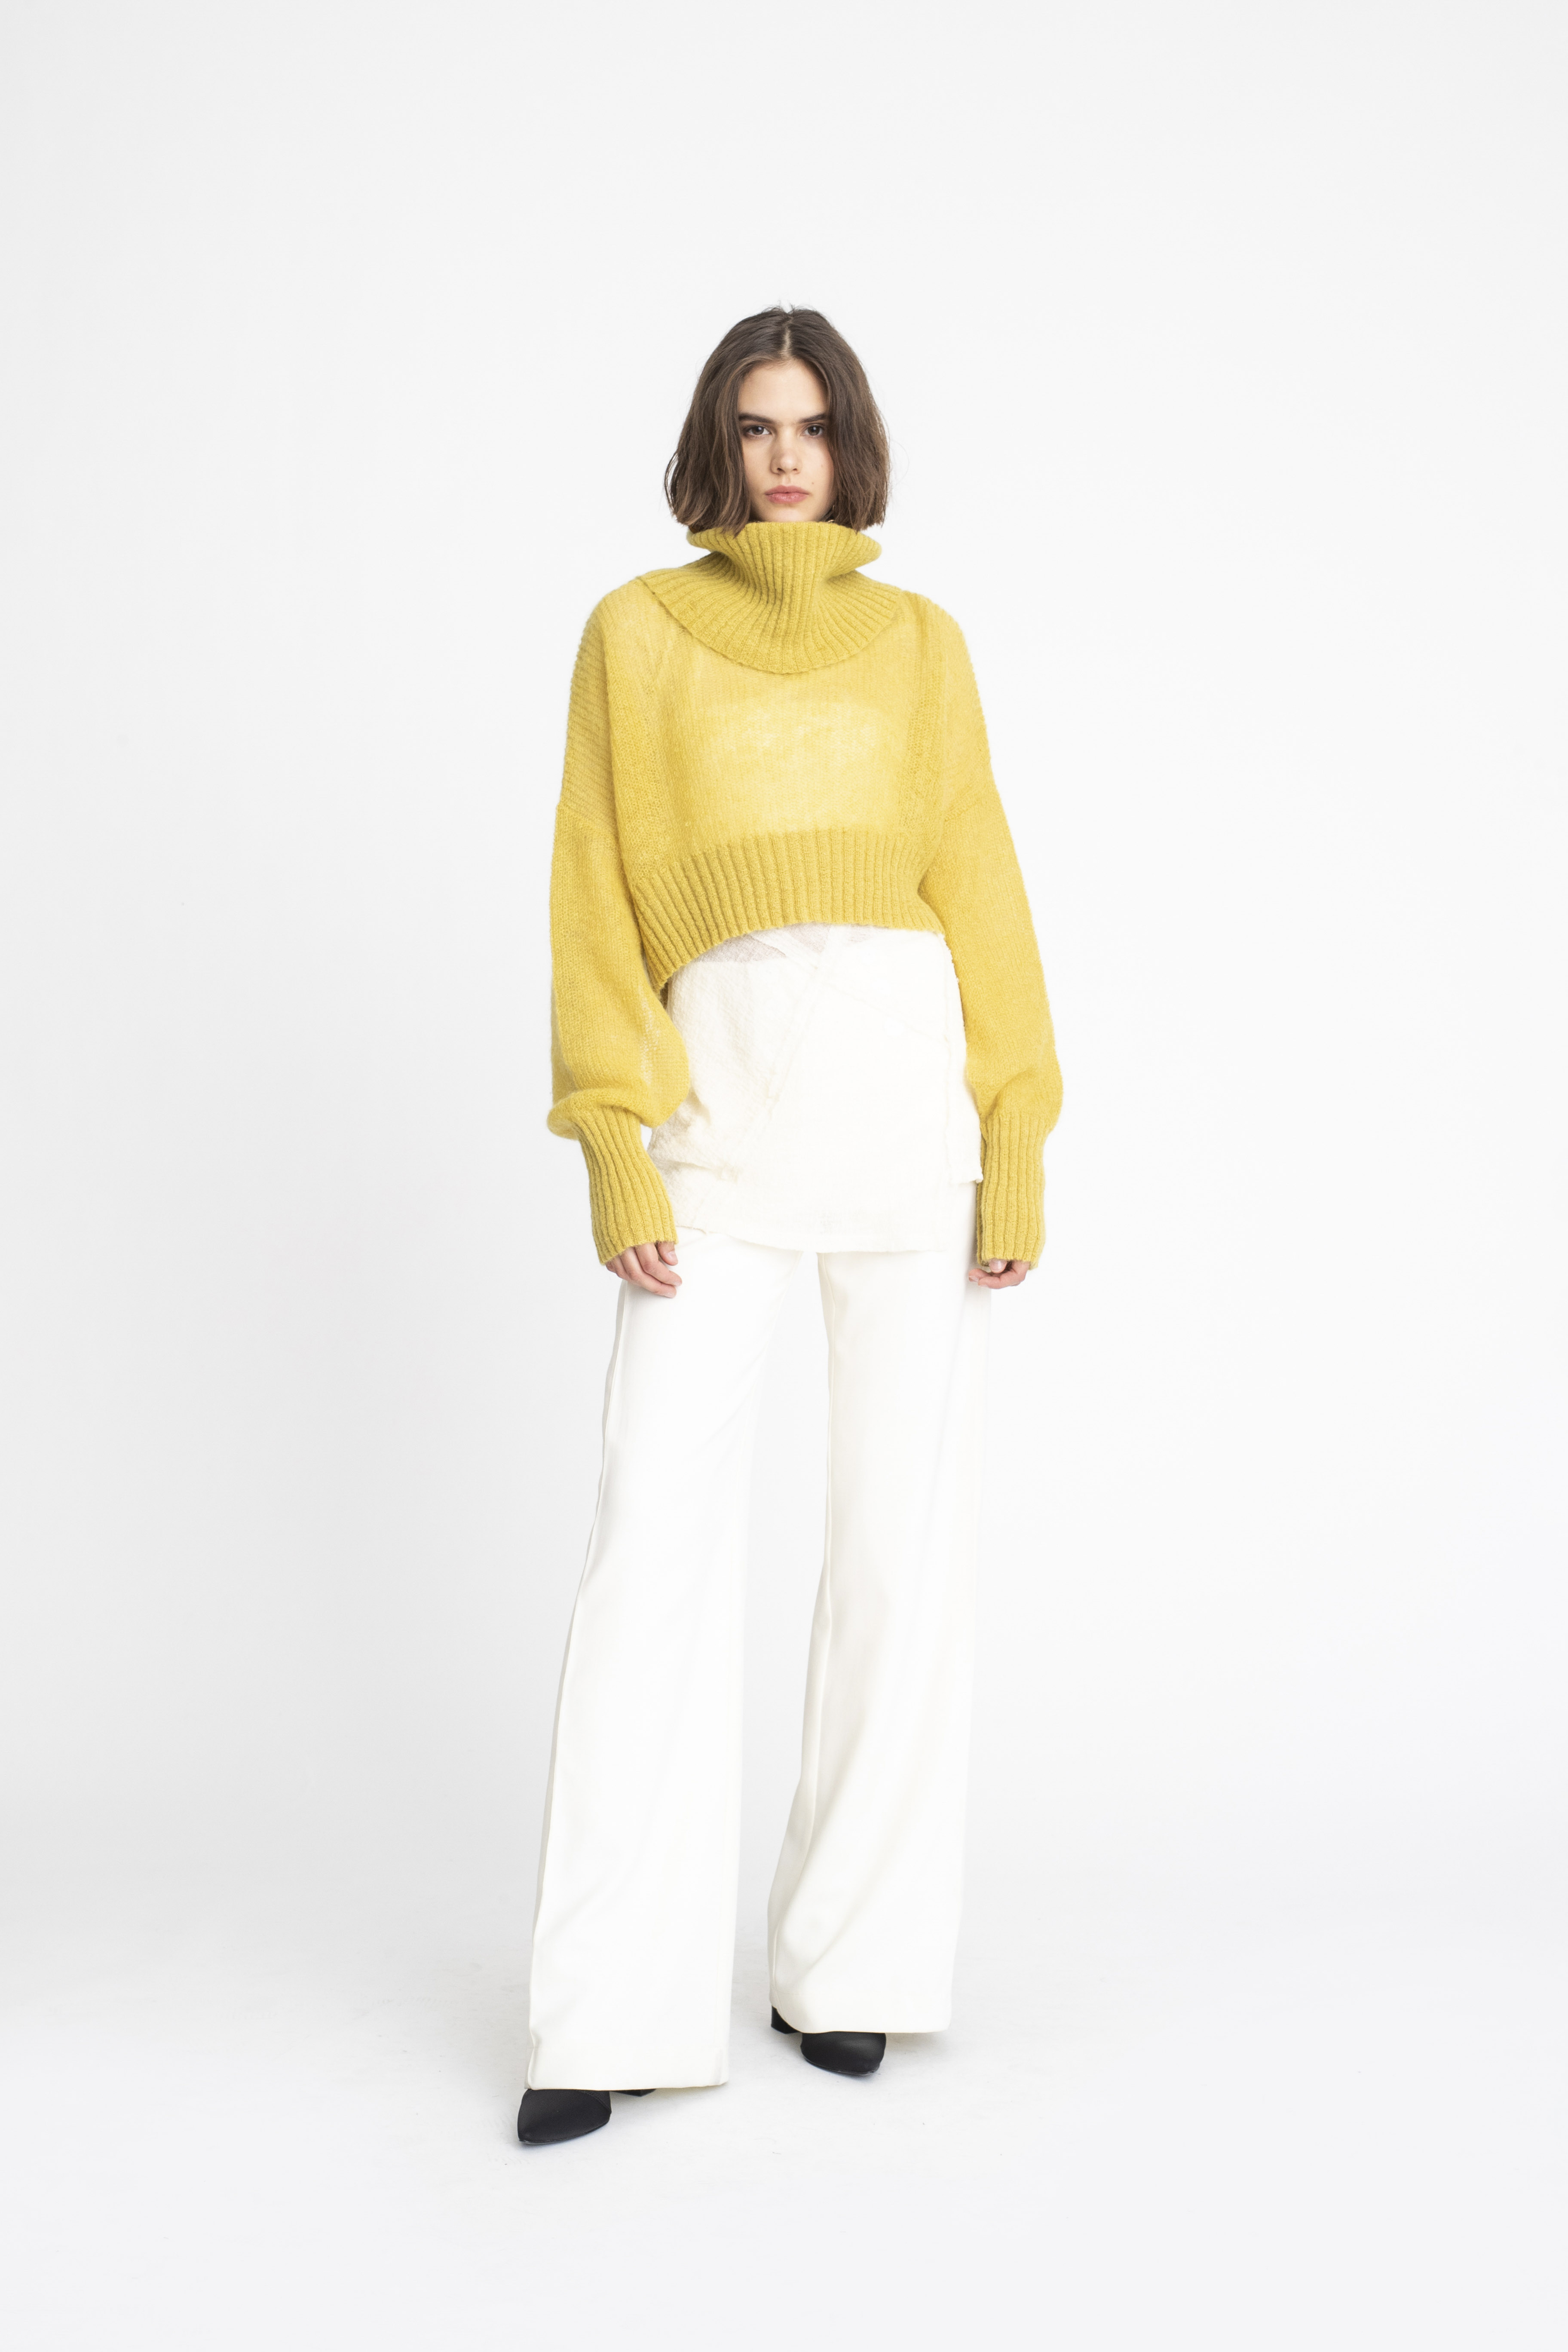 Abbreviate-Sweater_Mosaic-Tunic_Panelled-Joust-Pant_TaylorBoutique_AW19_L108_2386 2